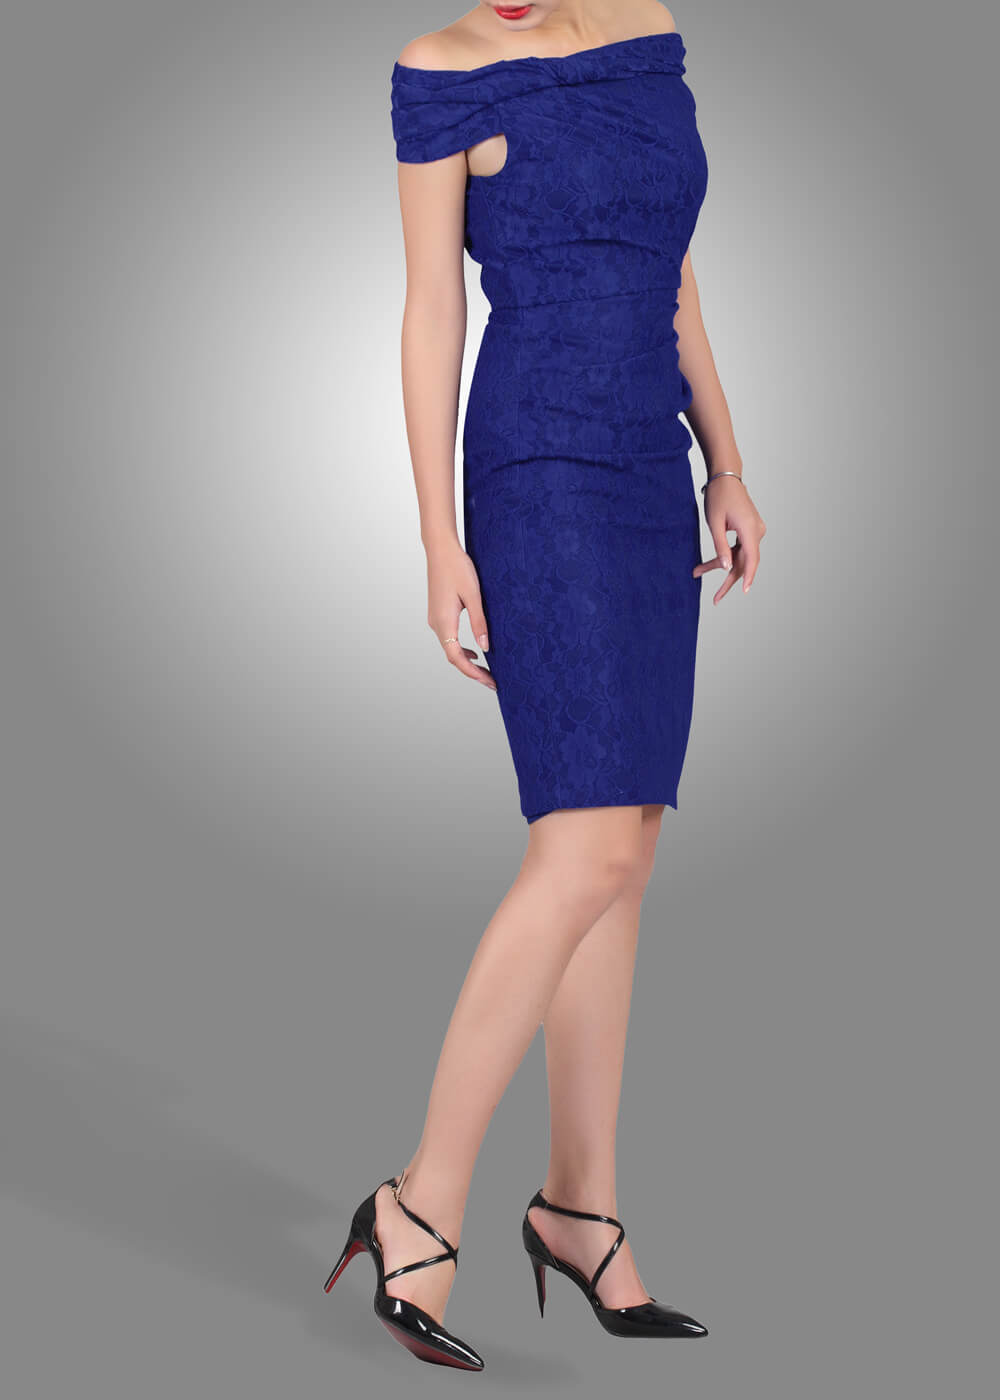 Jolie Moi Emma Pencil Dress Royal Blue